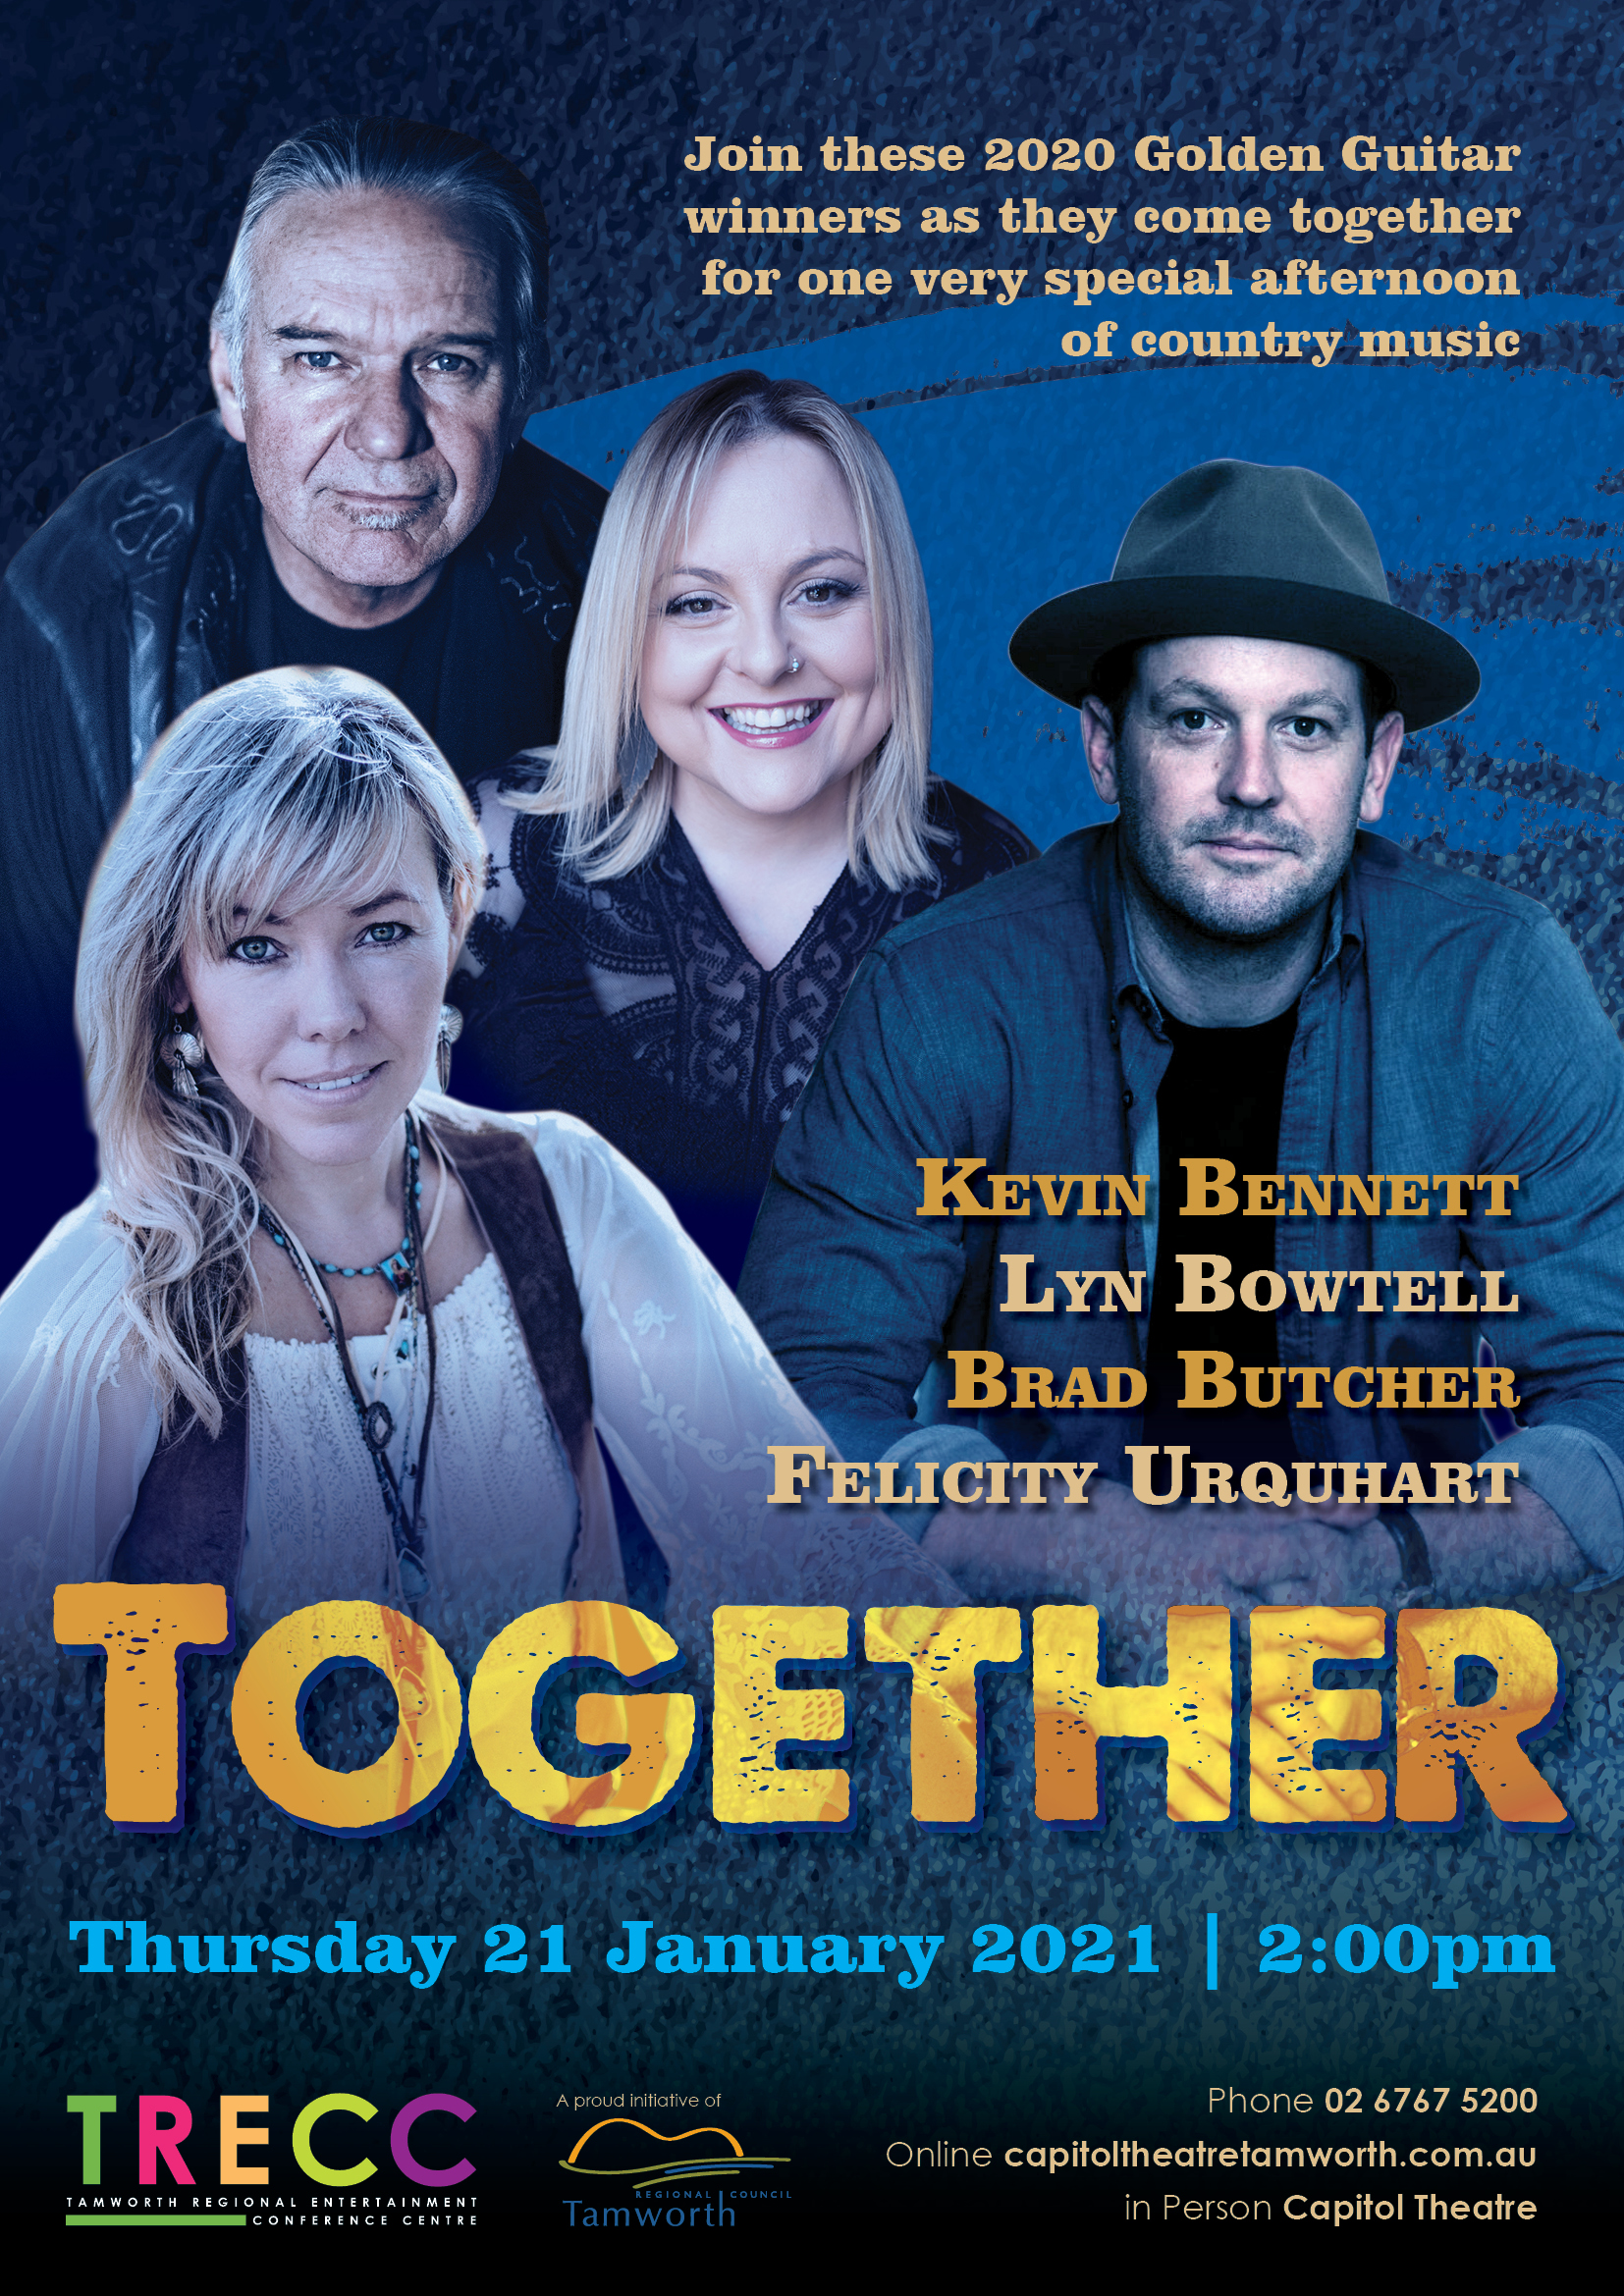 Join 2020 Golden Guitar winners, Kevin Bennett, Lyn Bowtell, Brad Butcher and Felicity Urquhart for one very special afternoon of country music.